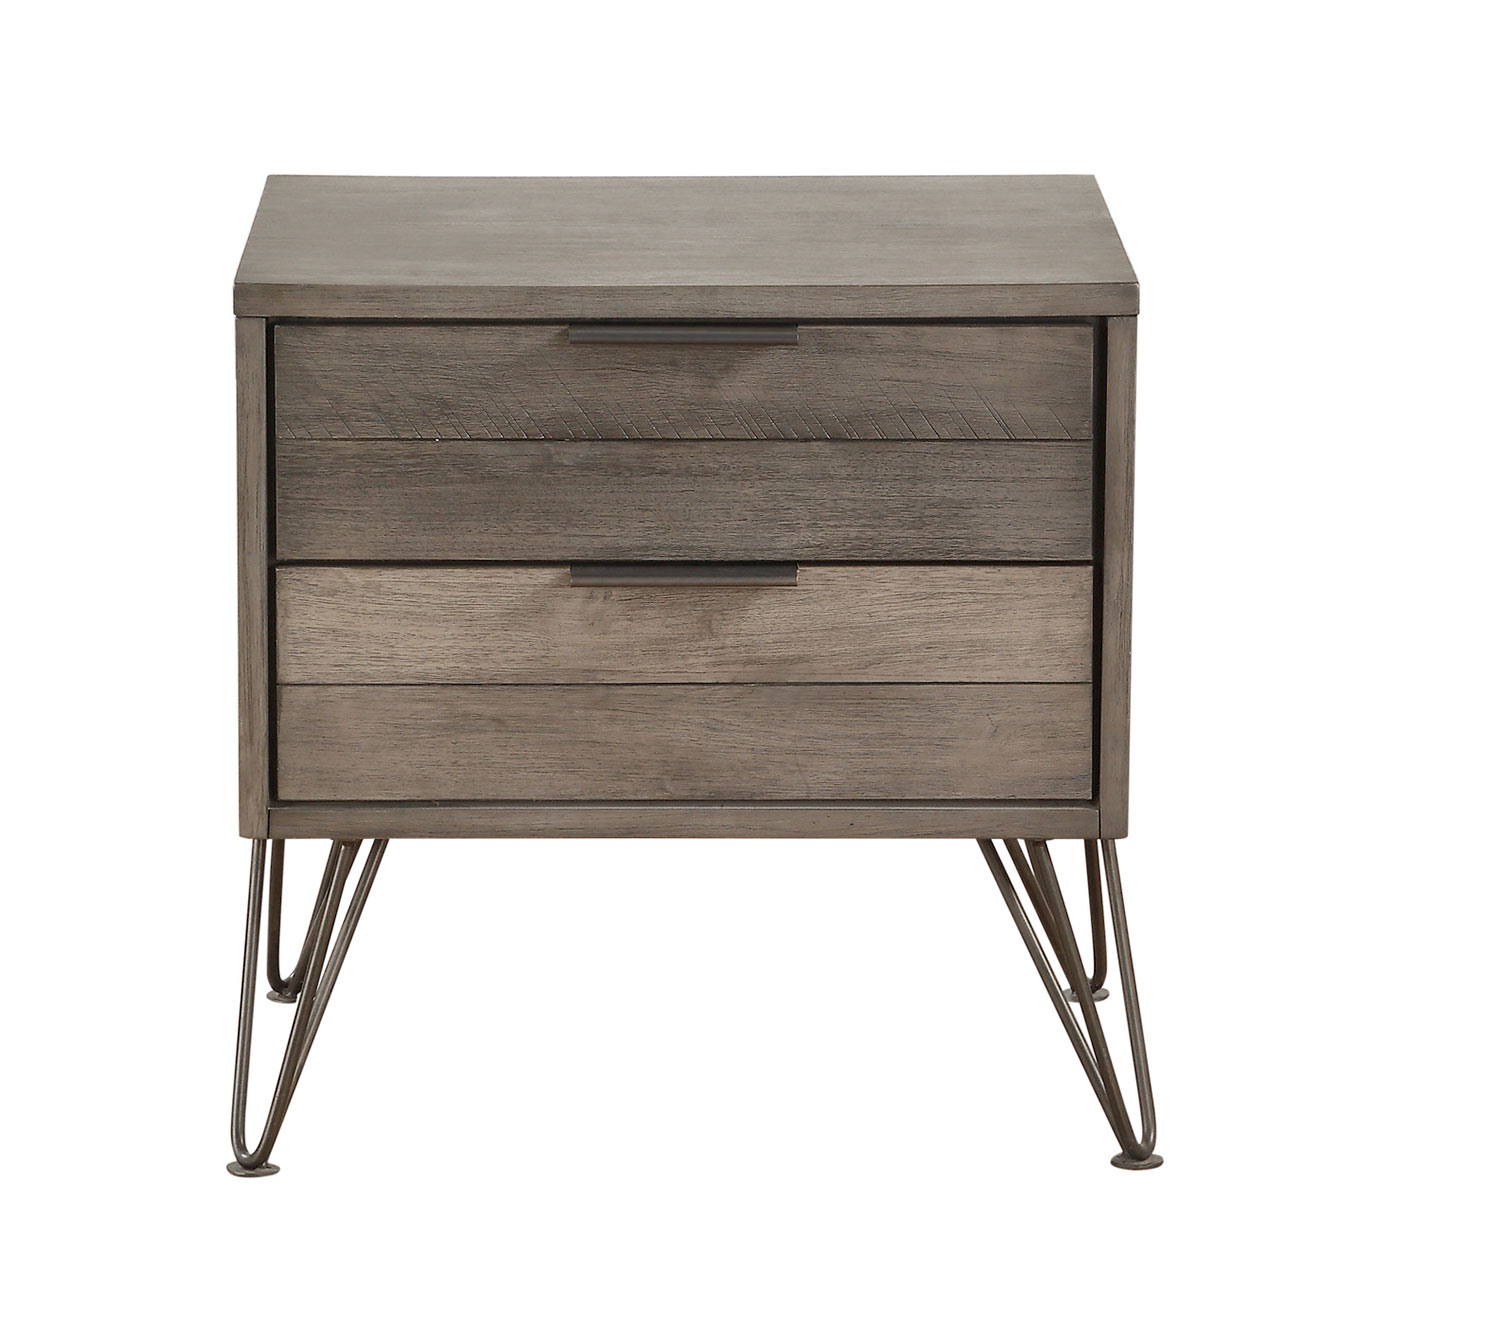 Homelegance Urbanite Night Stand - Brown-Gray